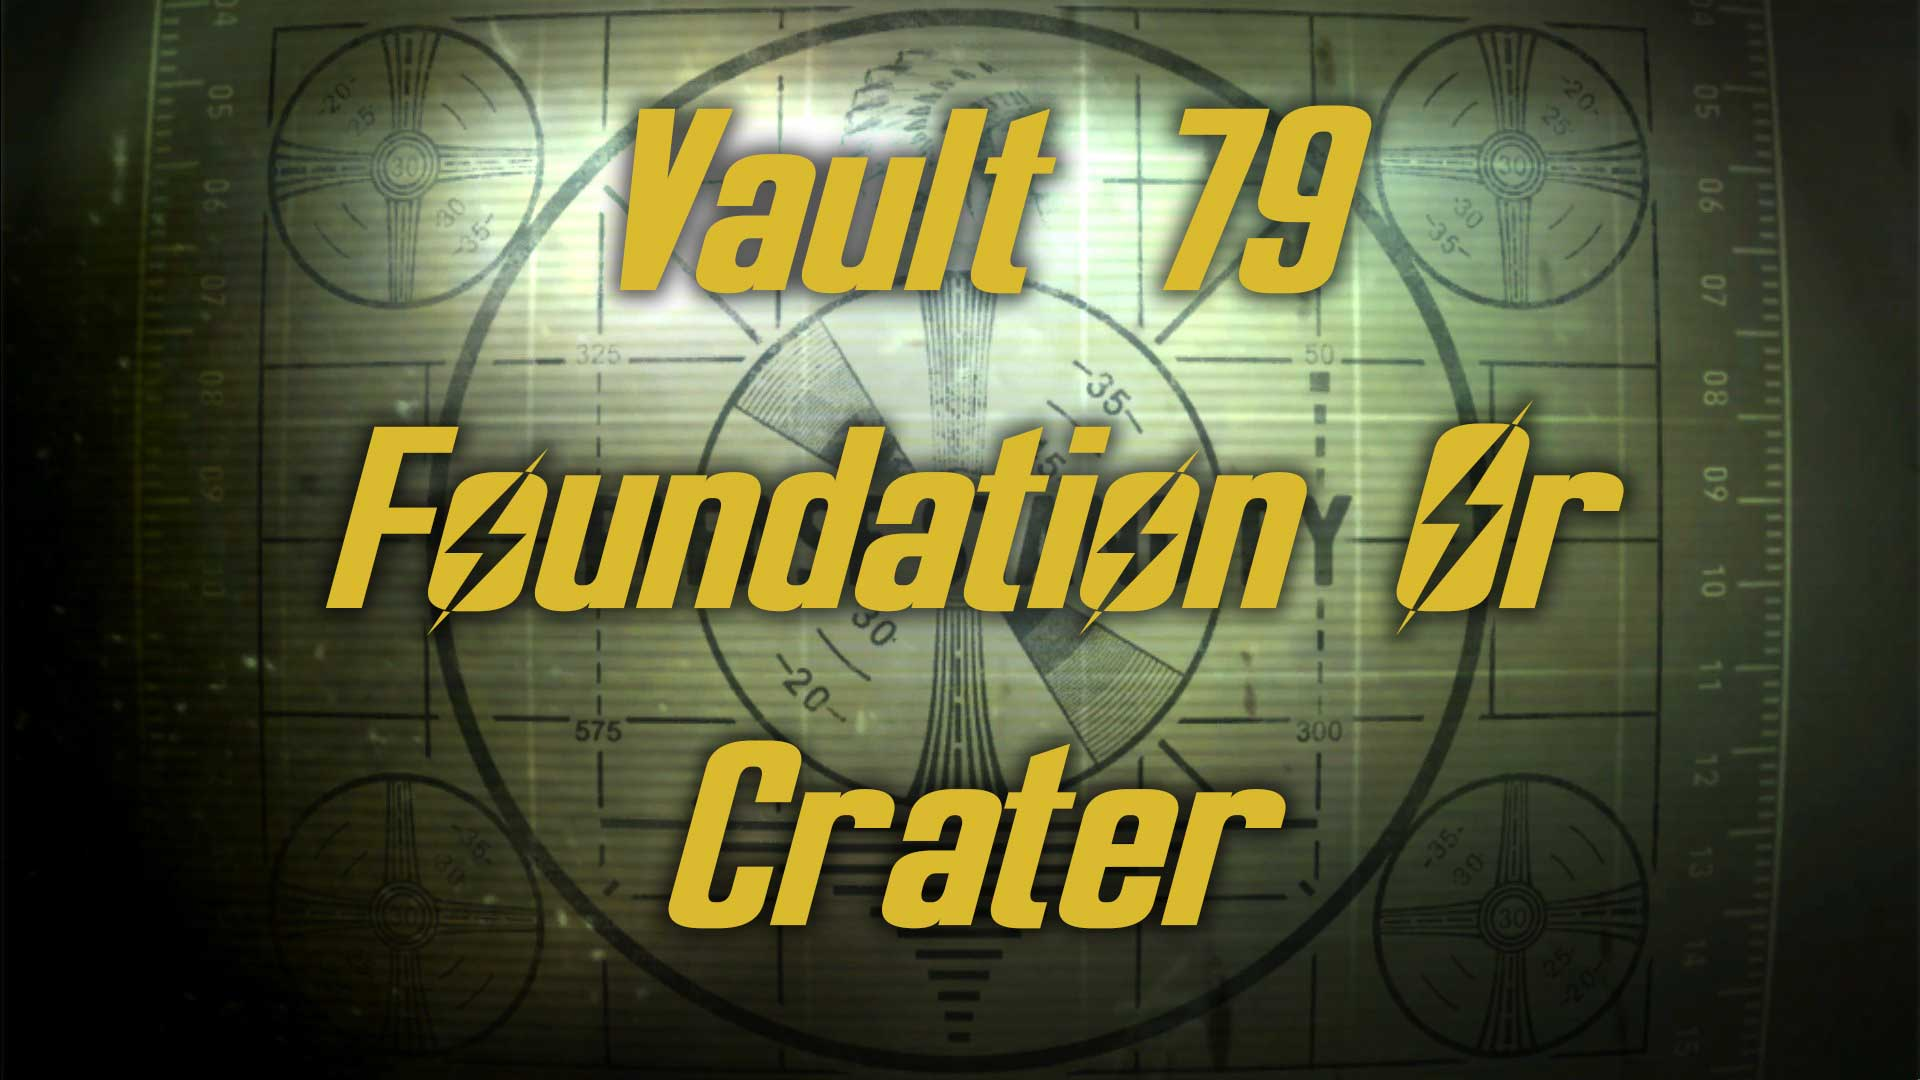 Vault 79 - Side With Foundation Or Crater? Image